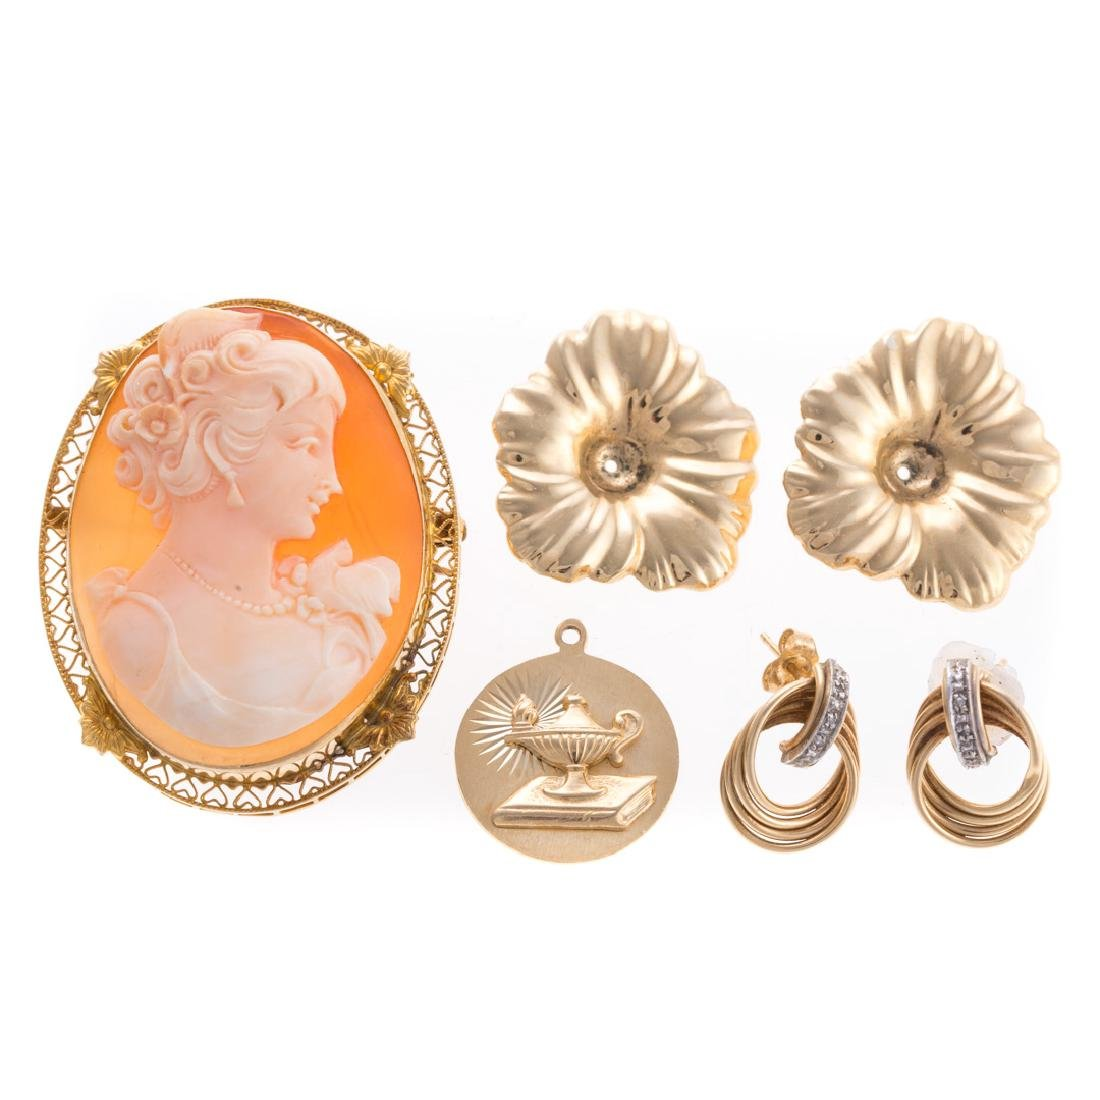 An Assortment of Lady's Gold Jewelry